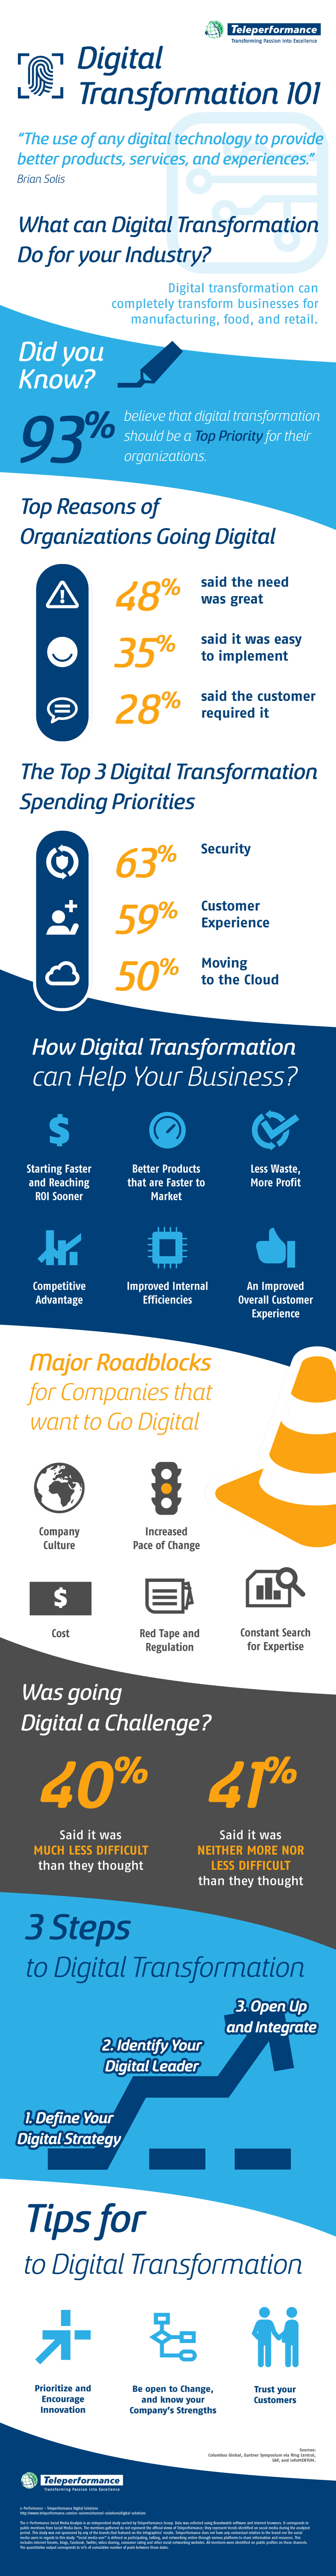 Digital-Transformation-Infographic